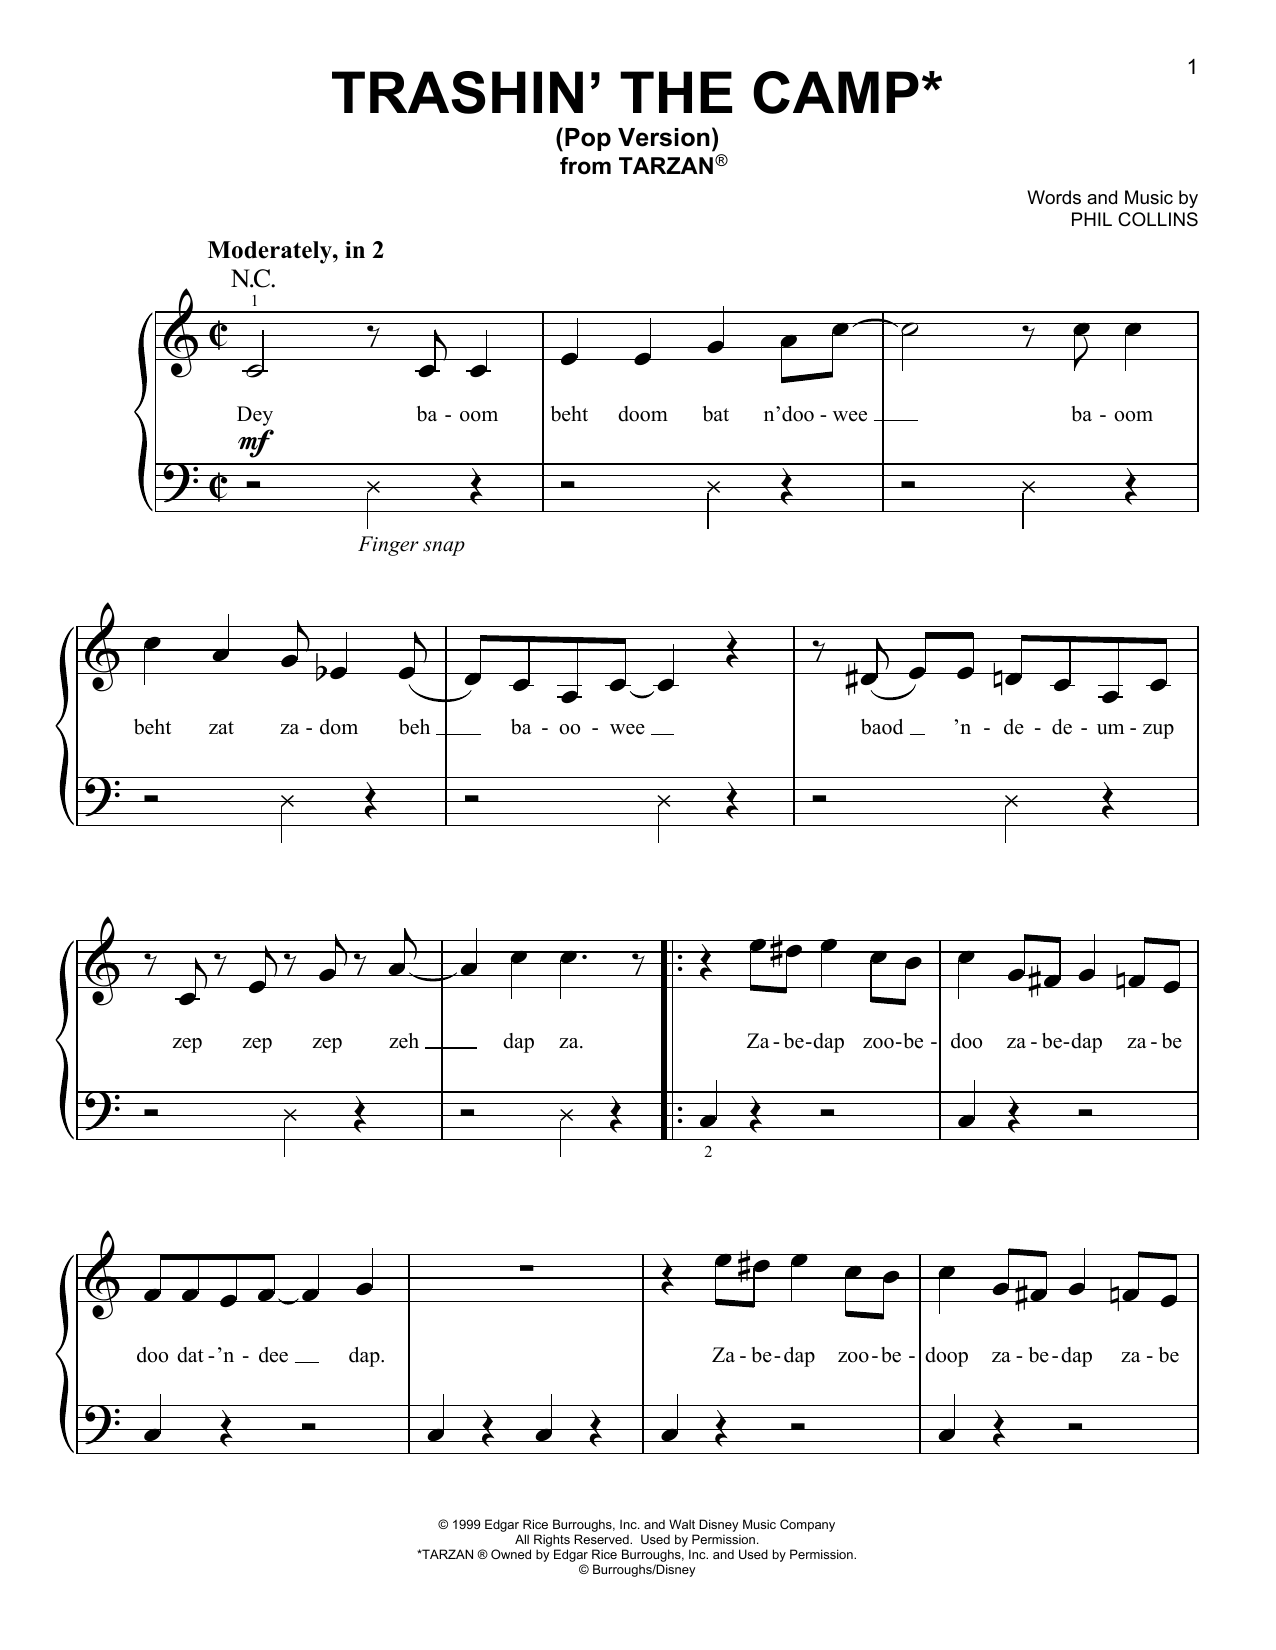 Phil Collins Trashin' The Camp (from Tarzan) (Pop Version) sheet music notes and chords. Download Printable PDF.